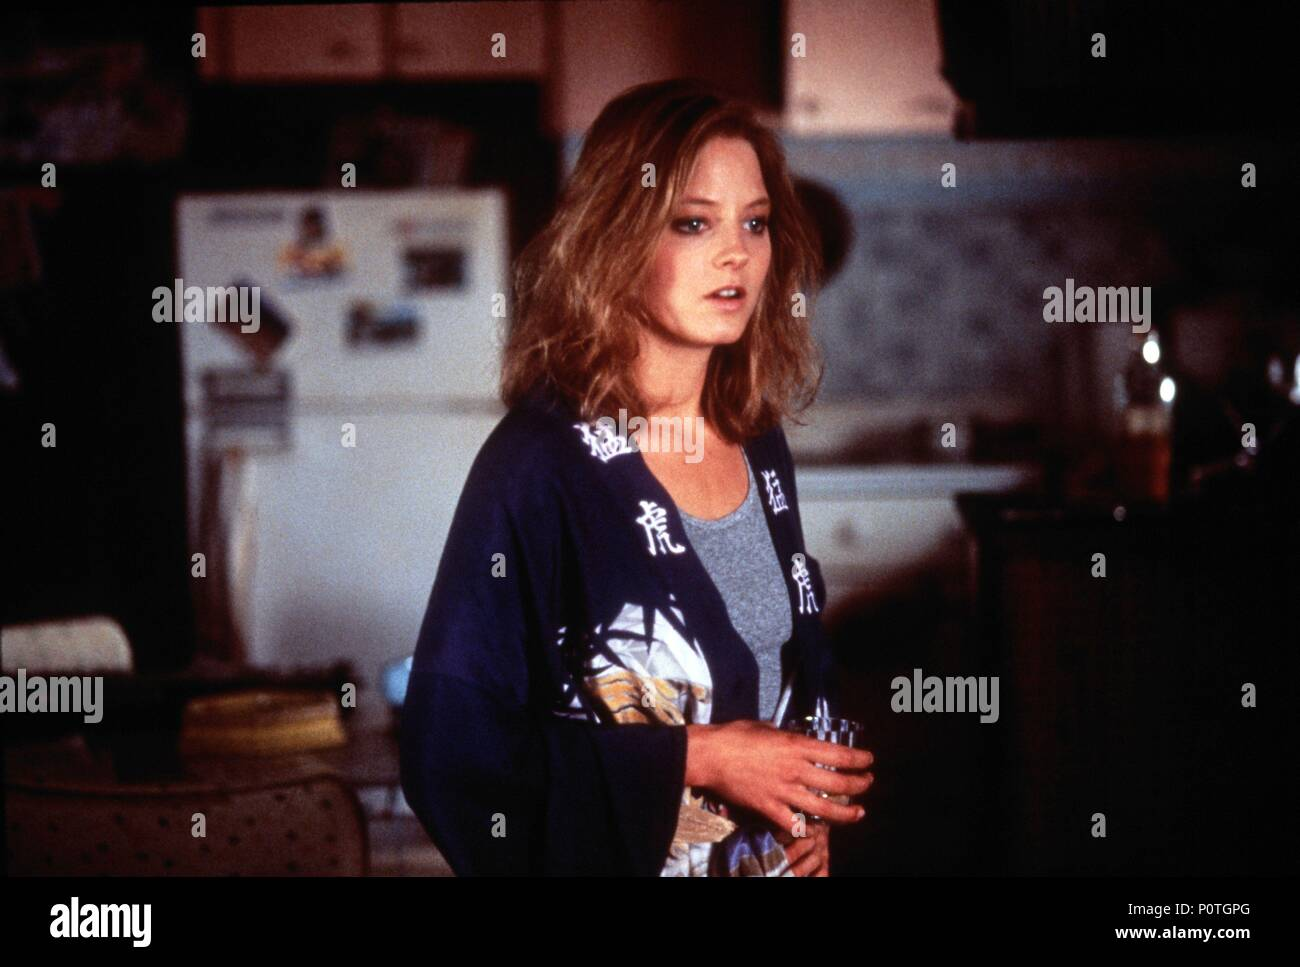 the accused jodie foster stock photos the accused jodie foster stock images alamy. Black Bedroom Furniture Sets. Home Design Ideas